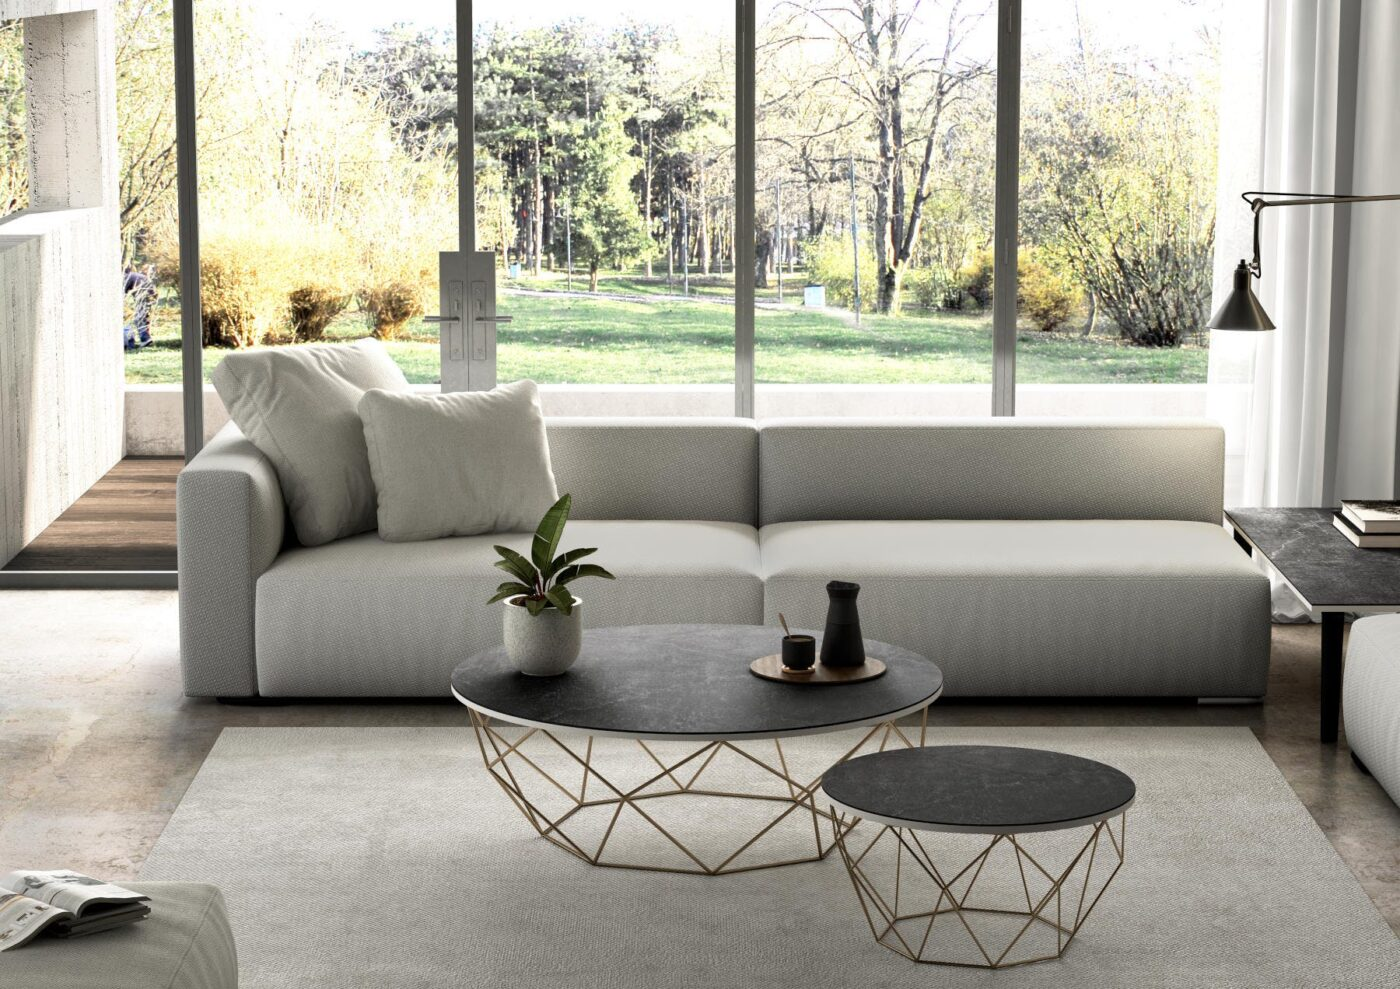 Image of Mesa Dekton Slim Table Detalle Laos 2 1 1 in Terraces: the protagonists of a summer at home - Cosentino